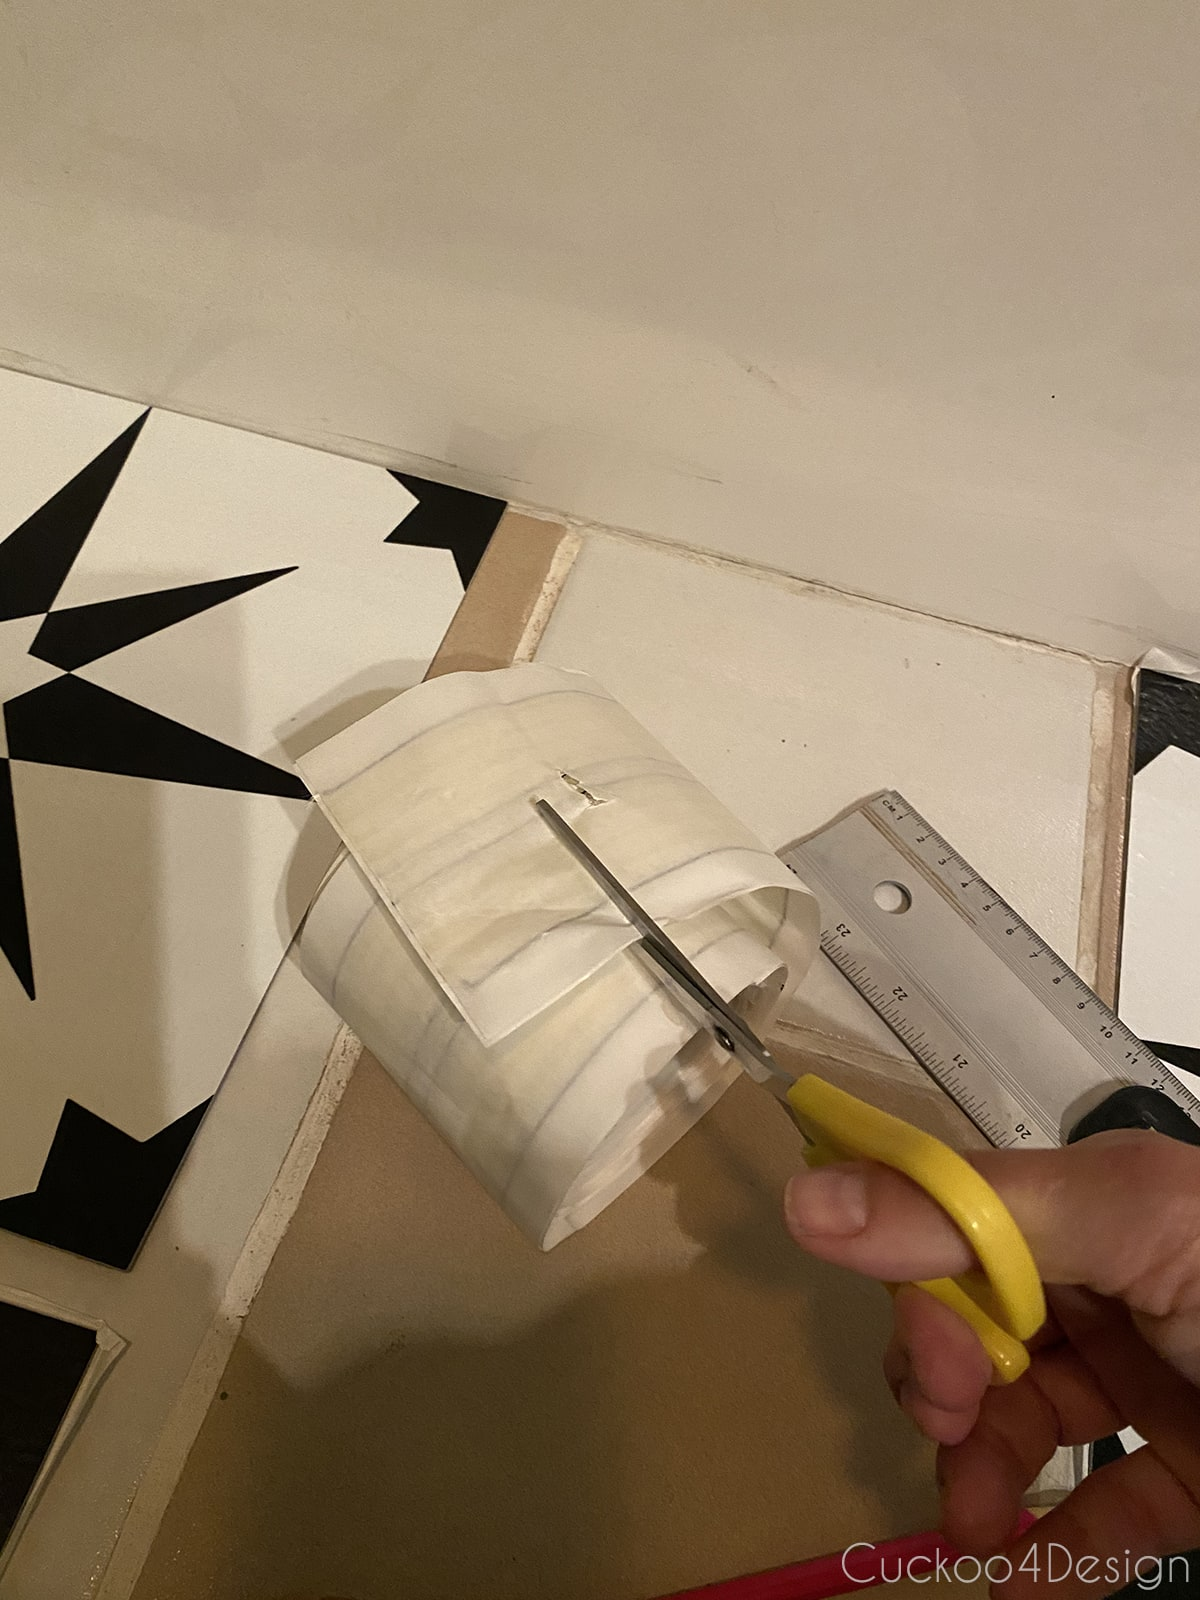 cutting double sided carpet tape to apply cheap peel and stick floor tile